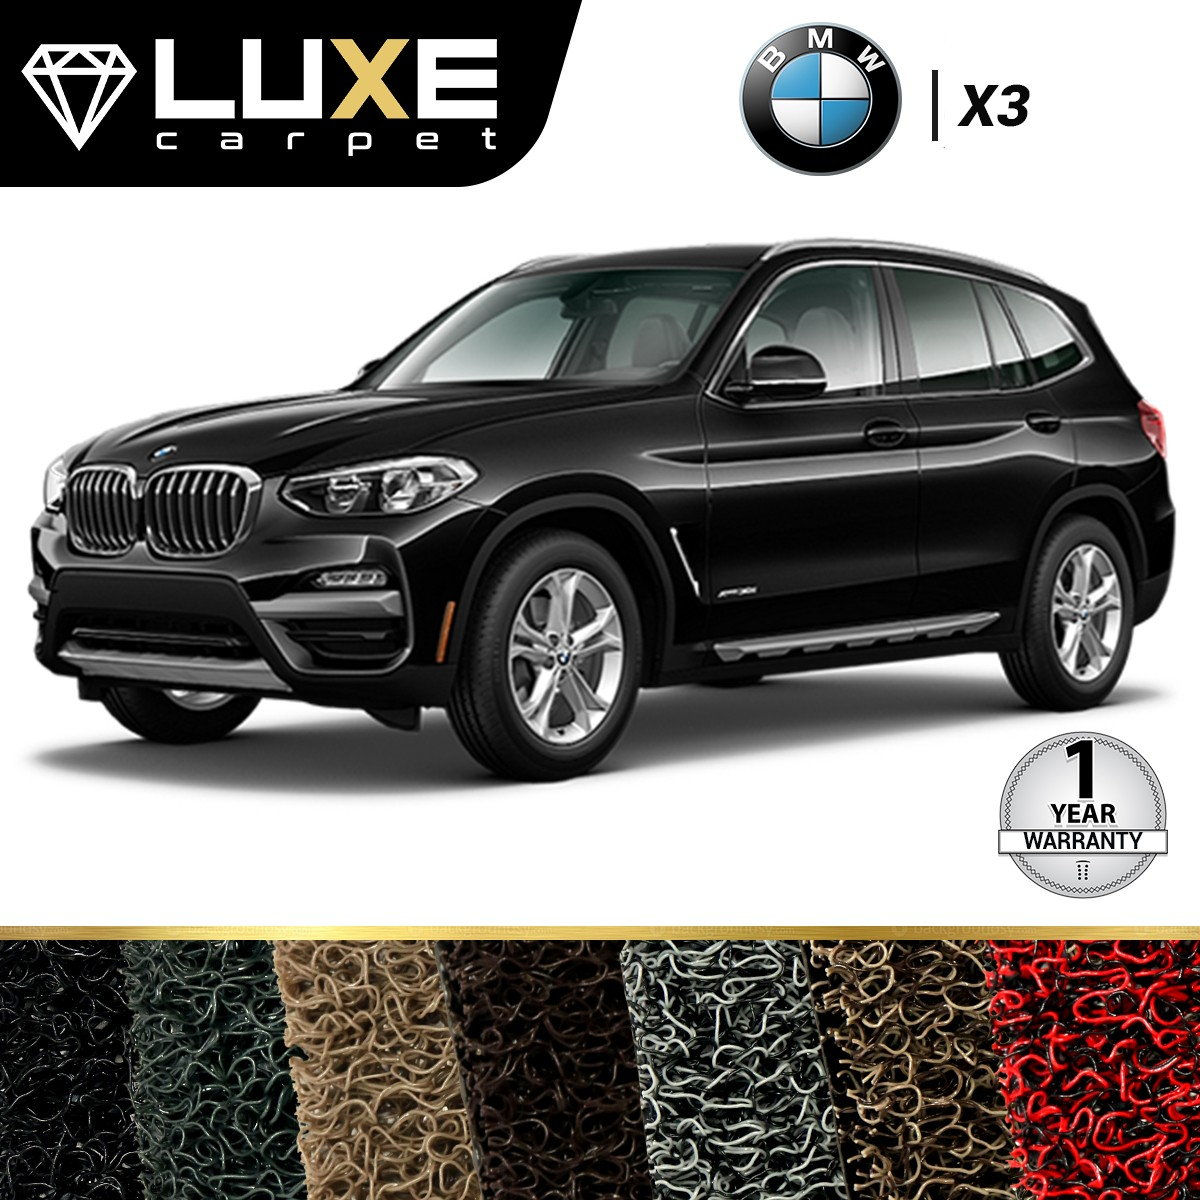 KARPET LUXE BMW X3 2014 UP - GOLD SERIES - NON BAGASI